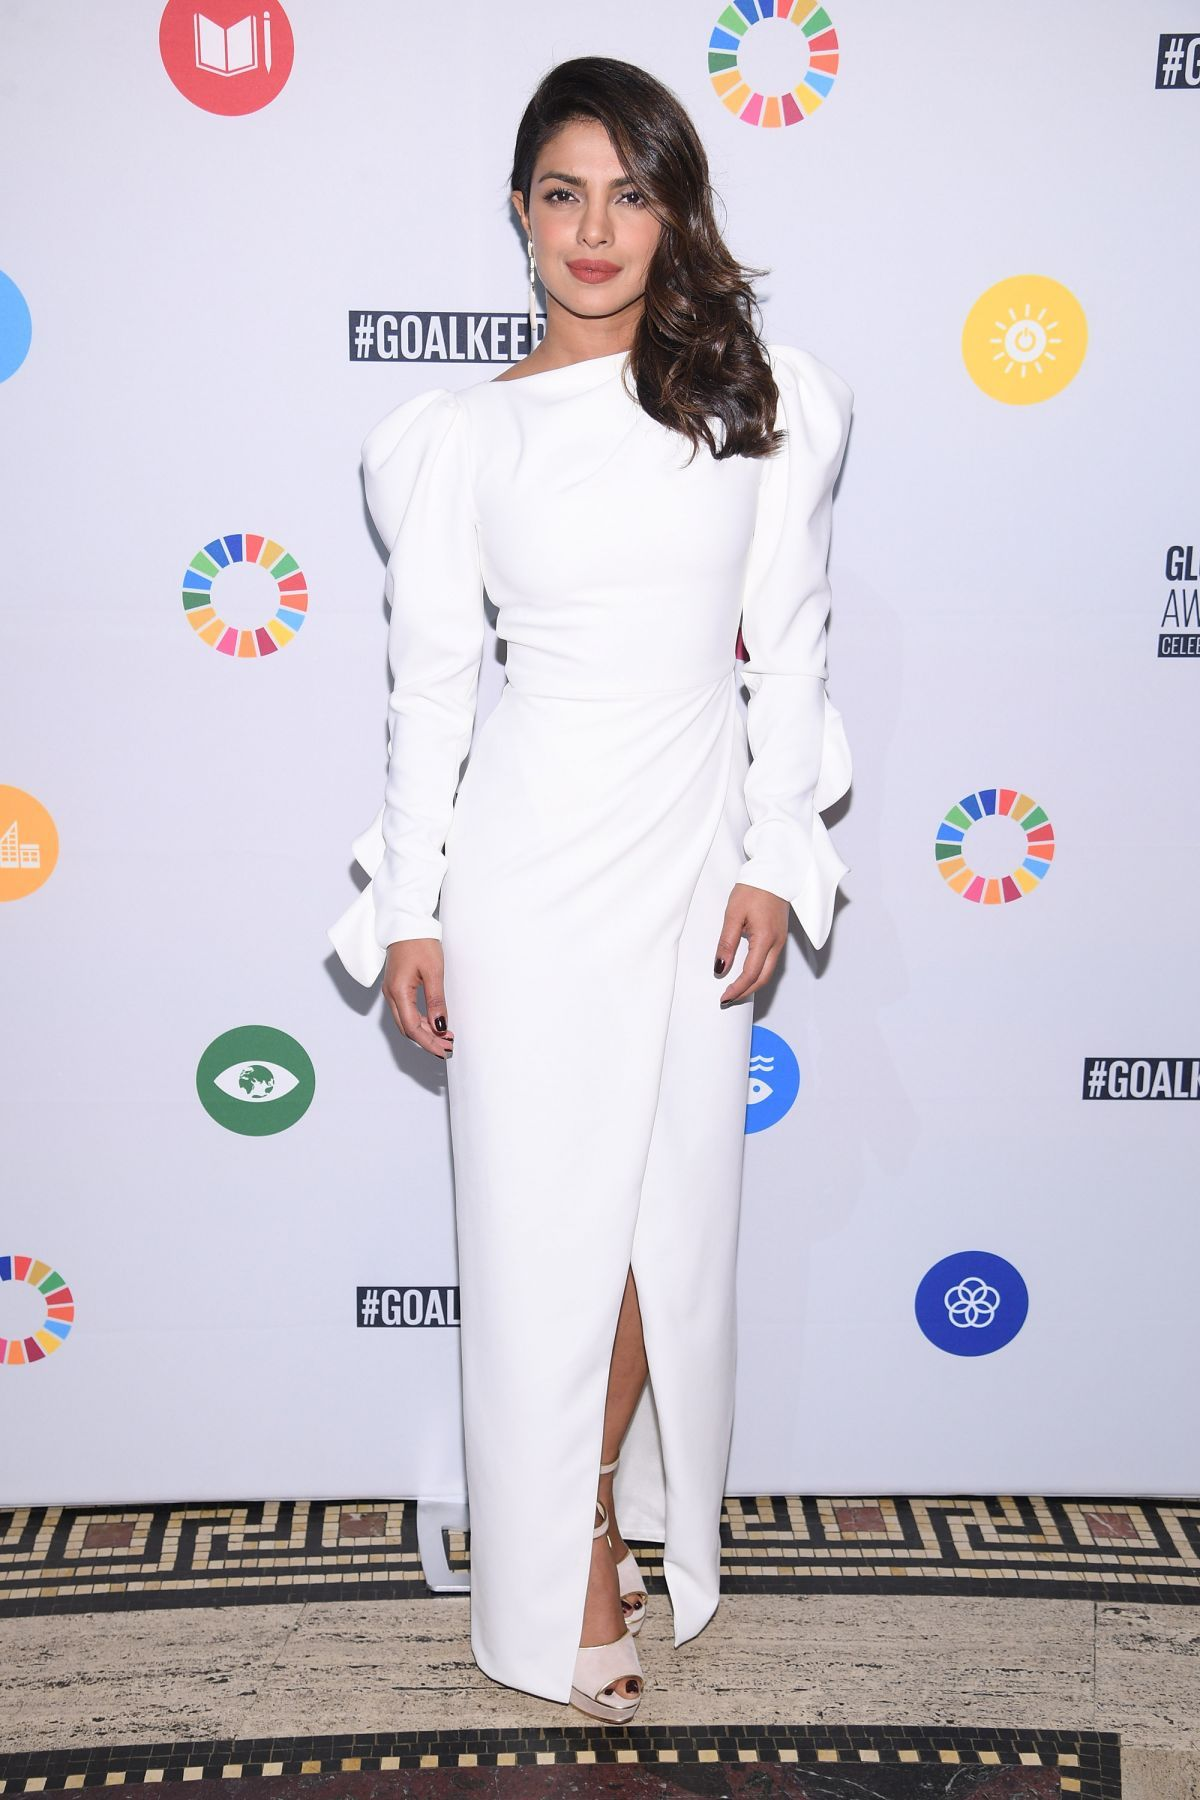 Paparazzi Roter Teppich Paparazzi Priyanka Chopra à Goalkeepers The Global Goals Awards